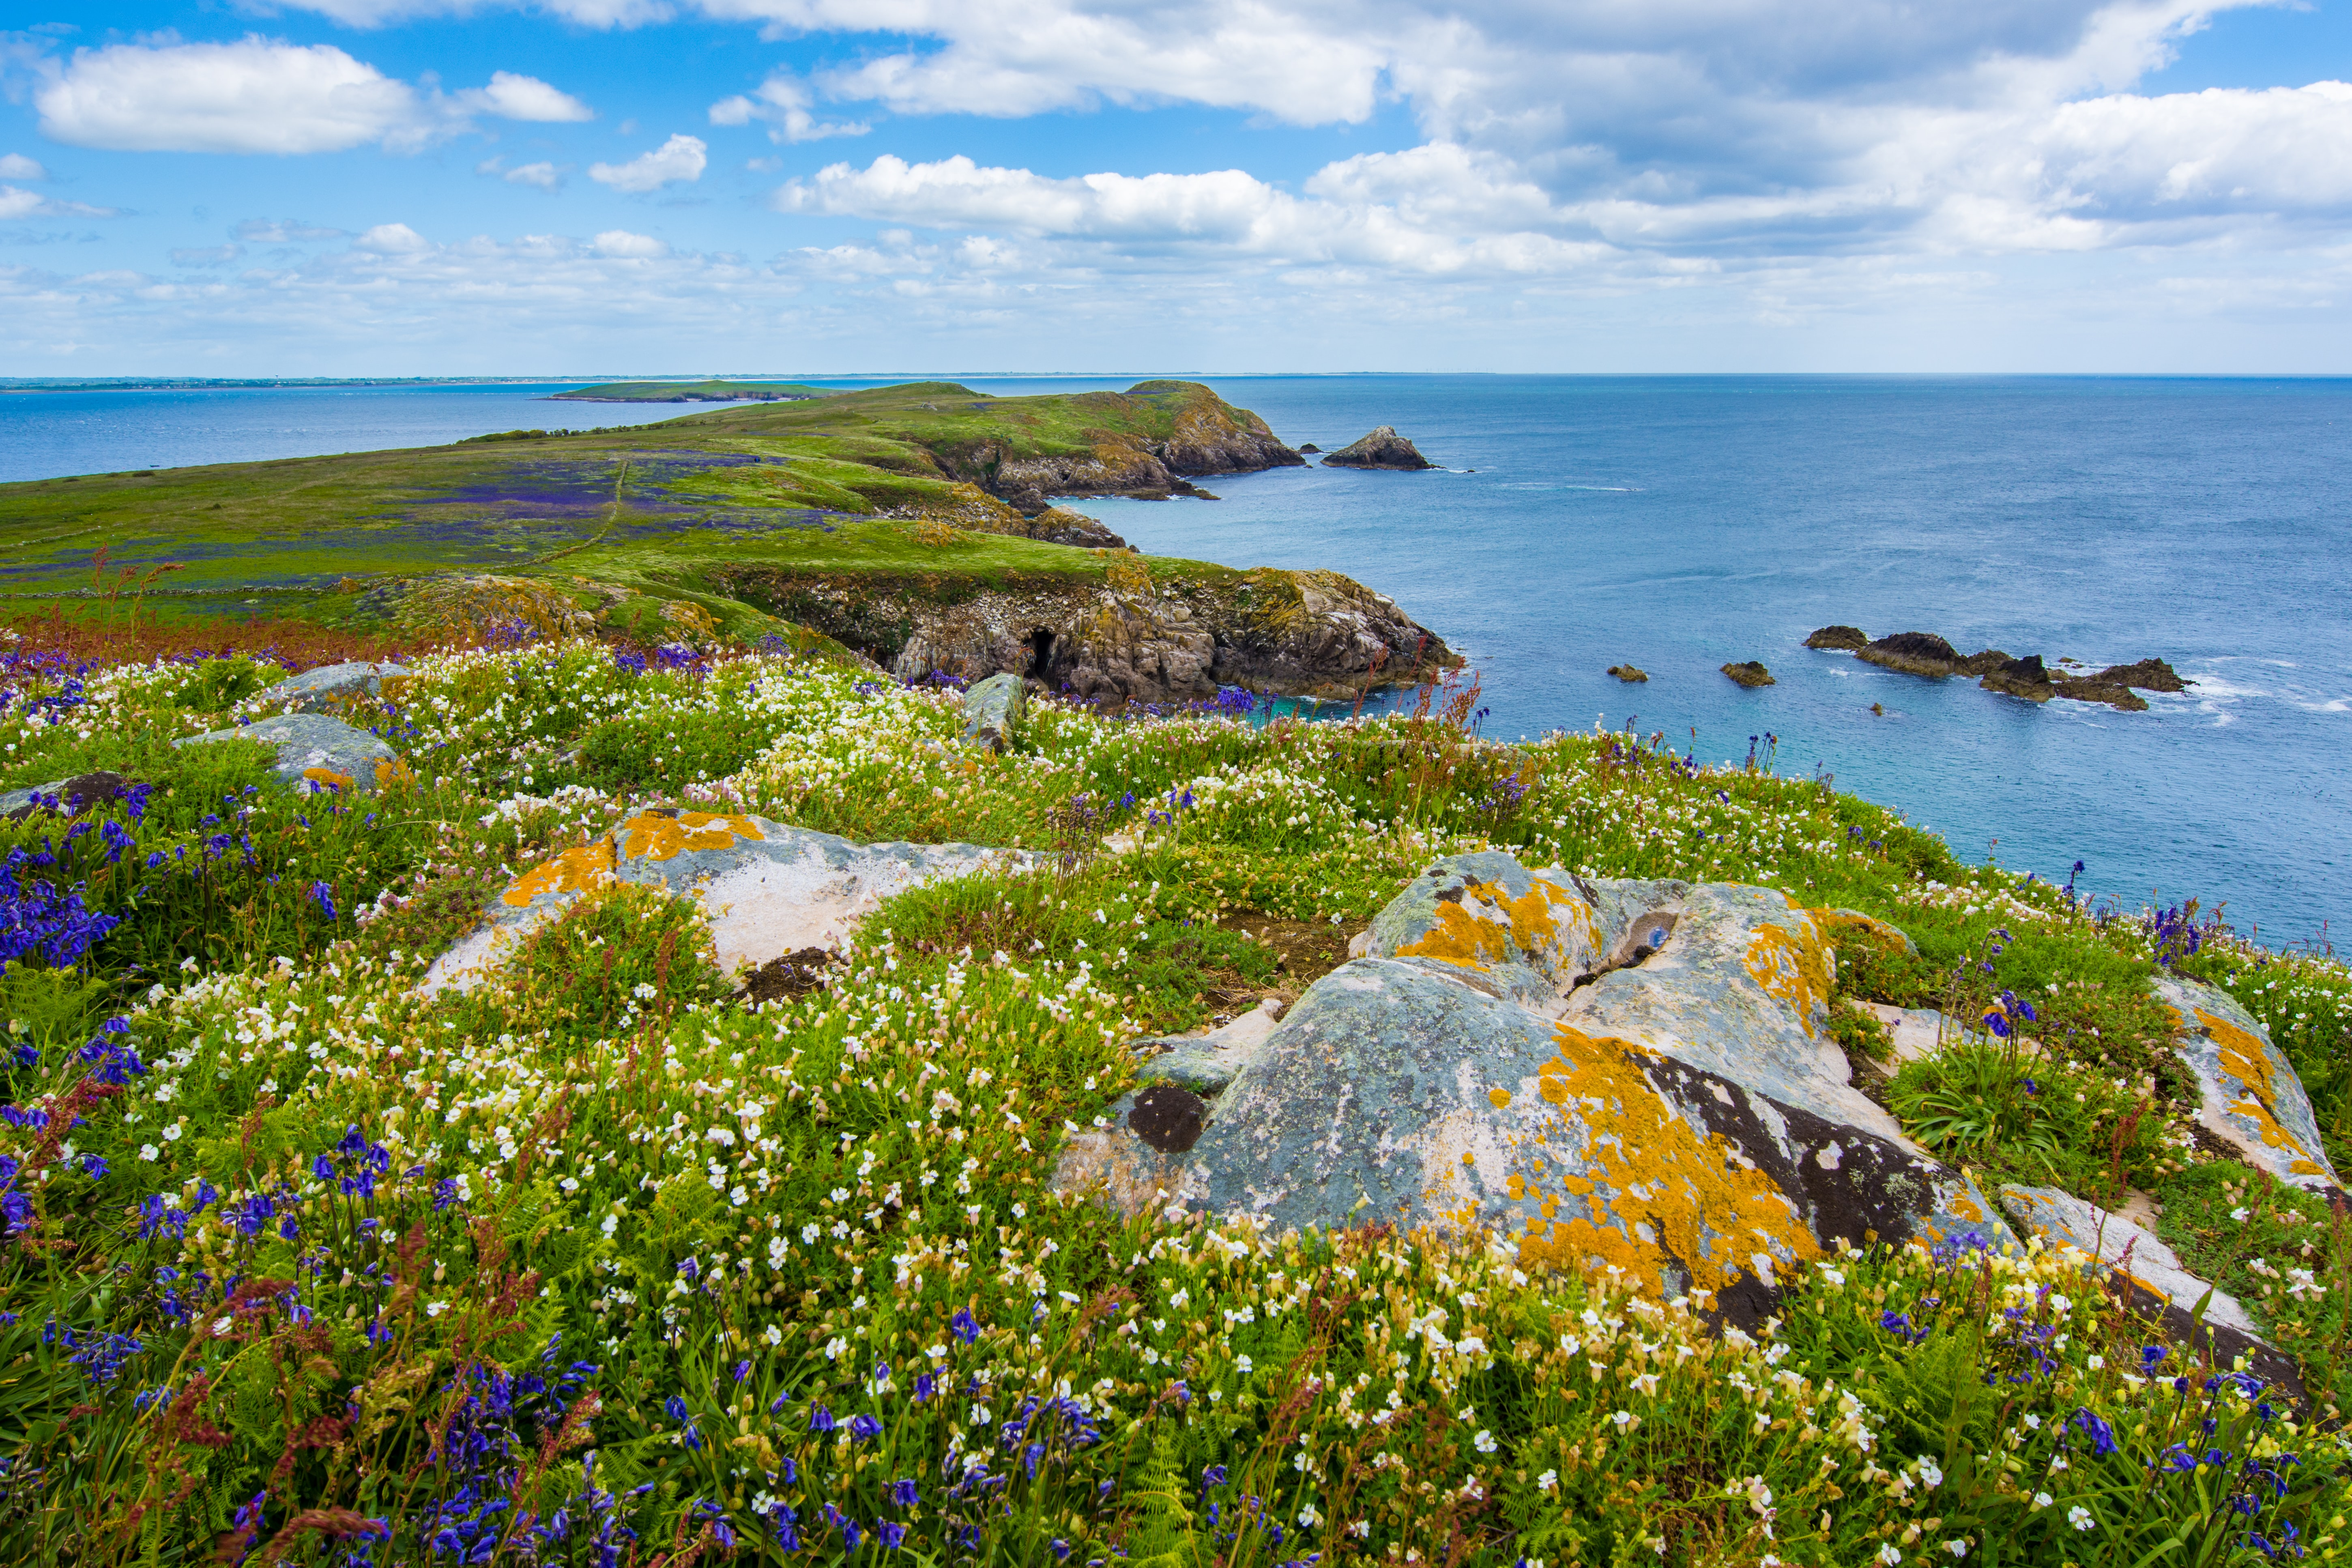 White and purple flowers on a grassy peninsula surrounded by azure sea